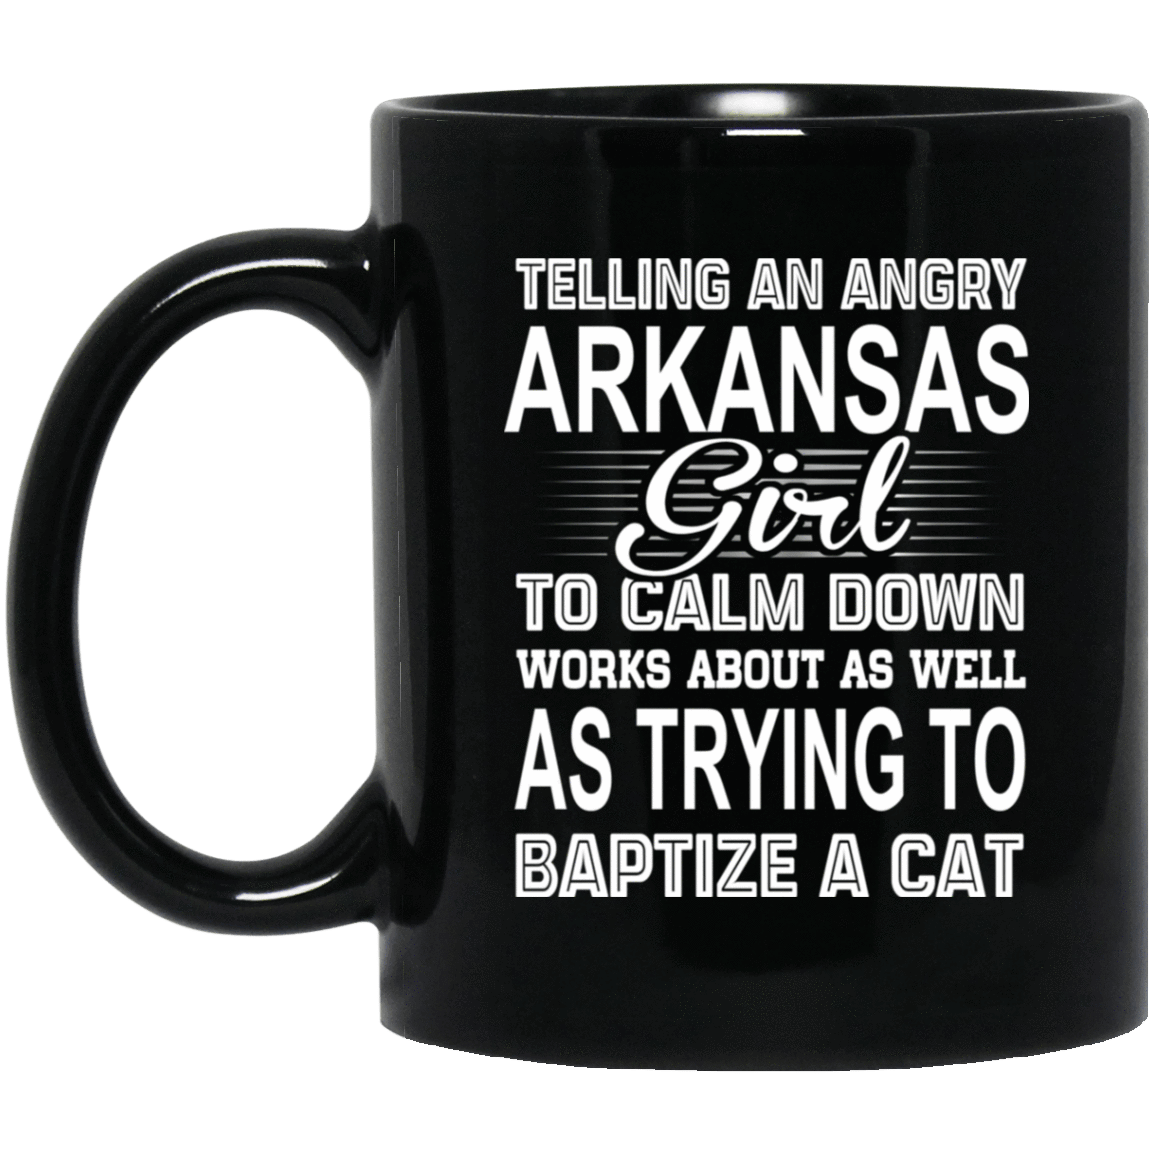 Telling An Angry Arkansas Girl To Calm Down Works About As Well As Trying To Baptize A Cat Mug 1065-10181-76151924-49307 - Tee Ript